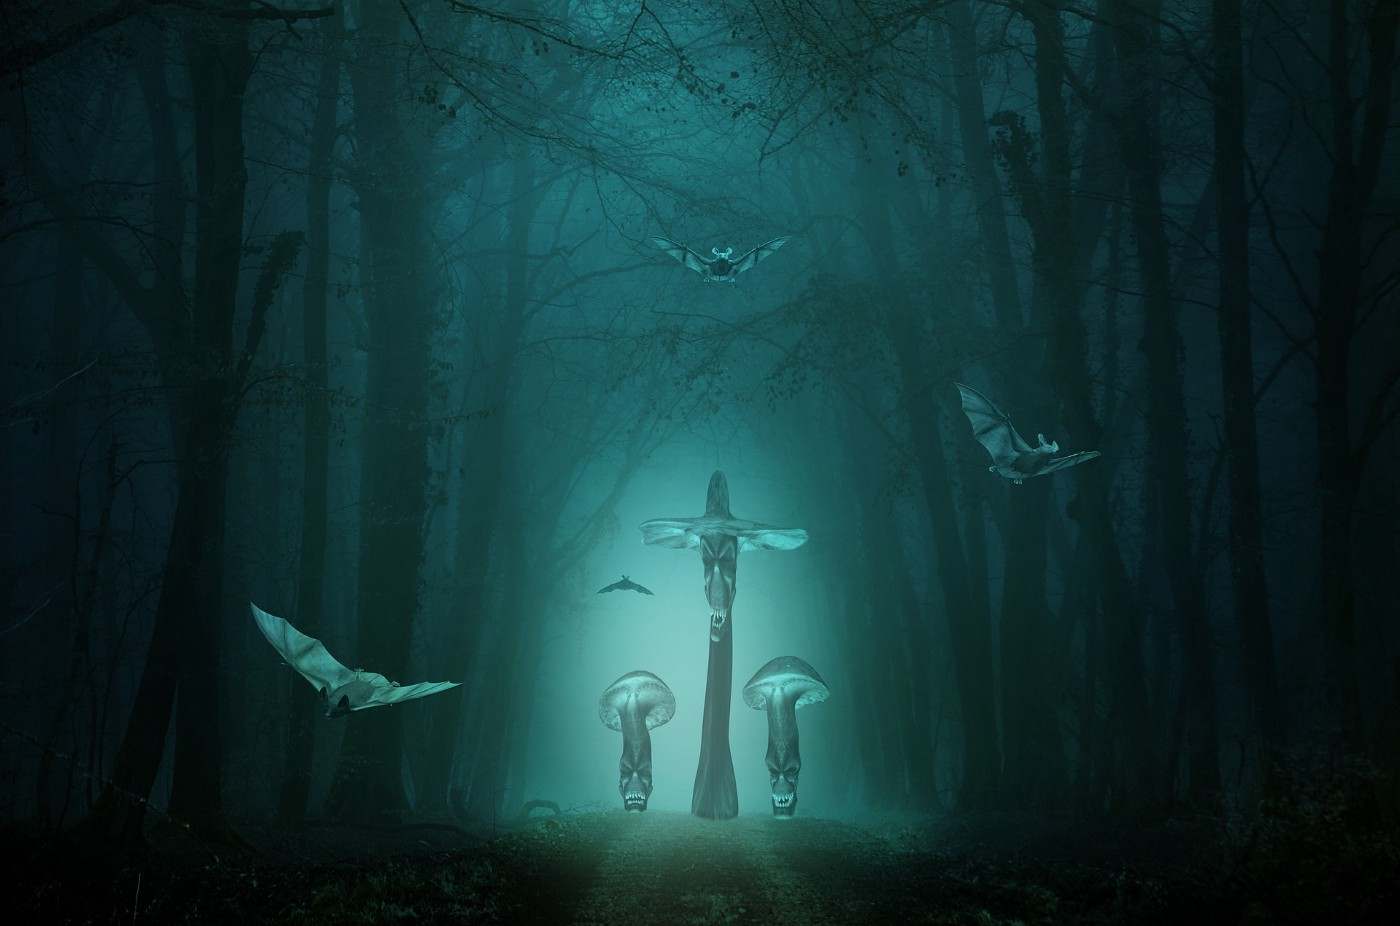 A fantastical image of an eerie forest with mushroom headed goblins.